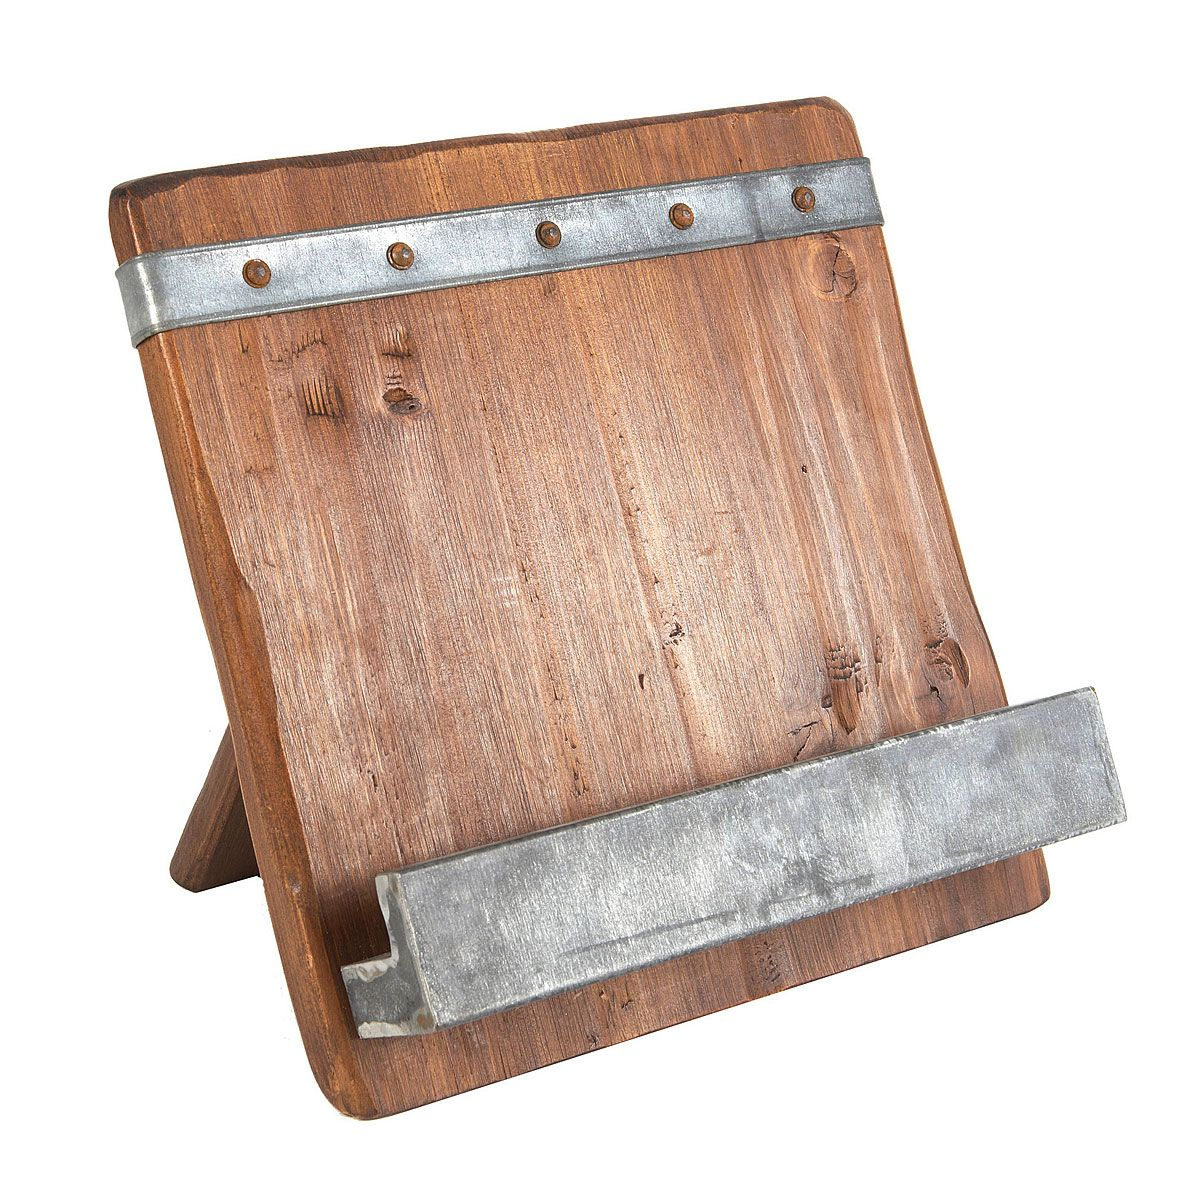 Book Holding Stand Reclaimed Wood Cookbook Stand Wood Pinterest